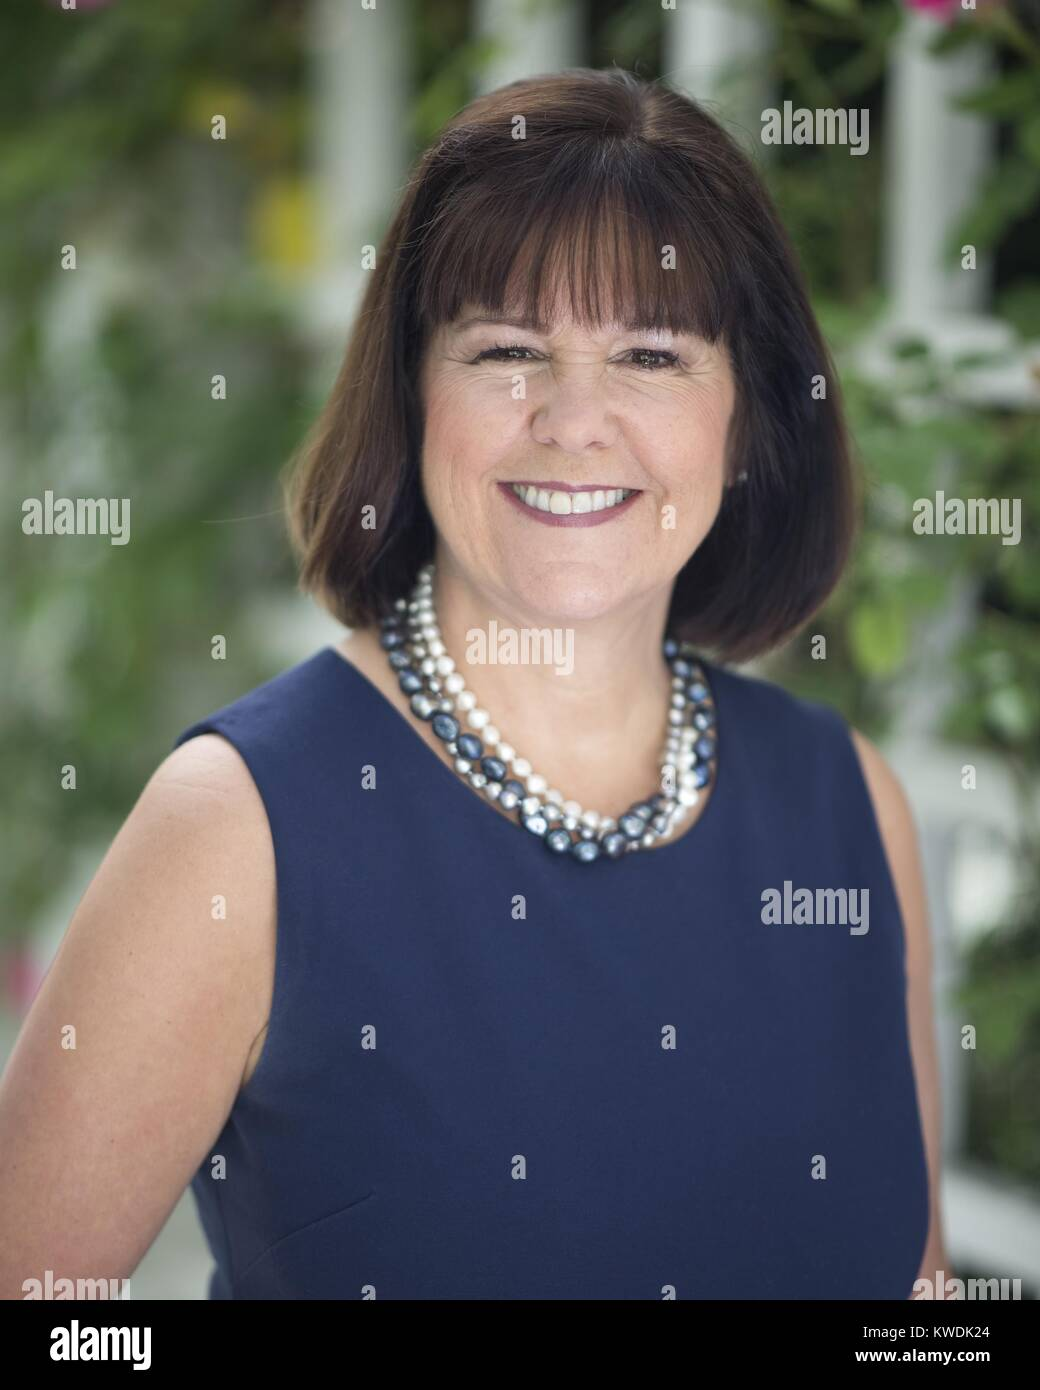 Official photo of Second Lady Karen Pence, by White House Photographer, Allaina Parton, May 16, 2017. Karen Pence - Stock Image